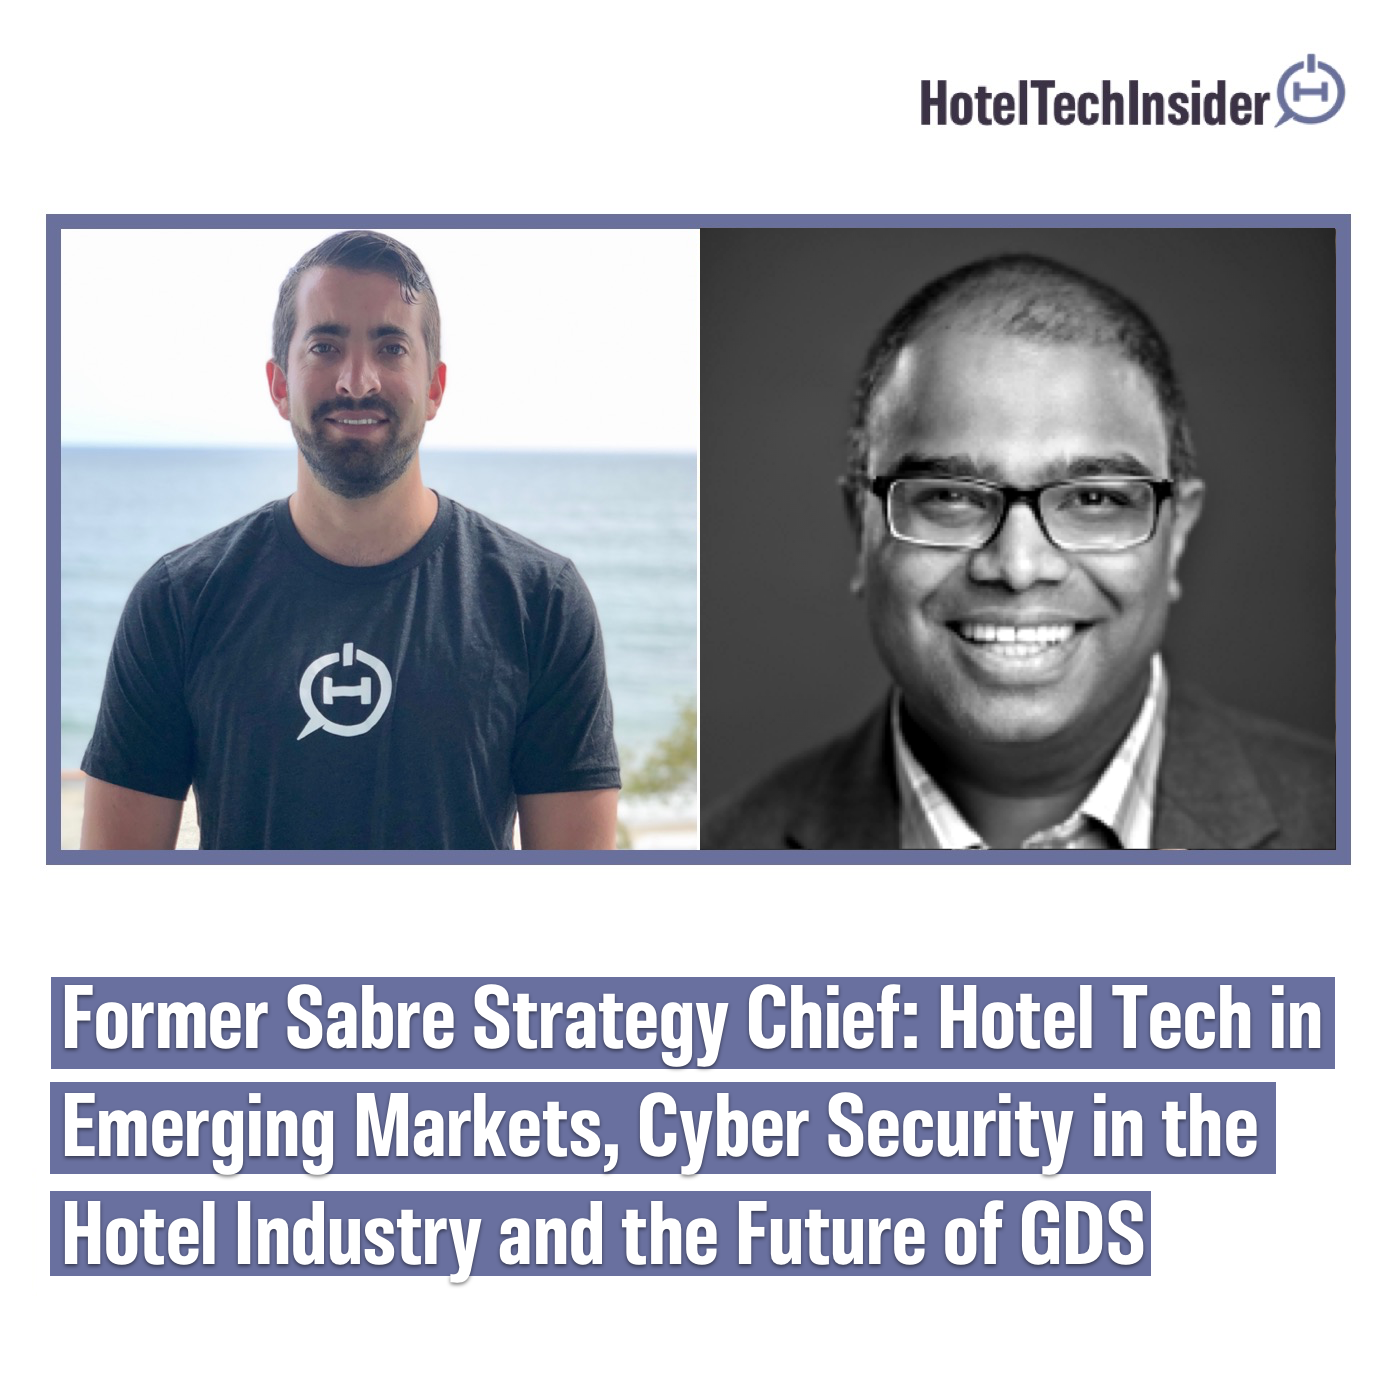 Former Sabre Strategy Chief: Hotel Tech in Emerging Markets, Cyber Security in the Hotel Industry and the Future of GDS